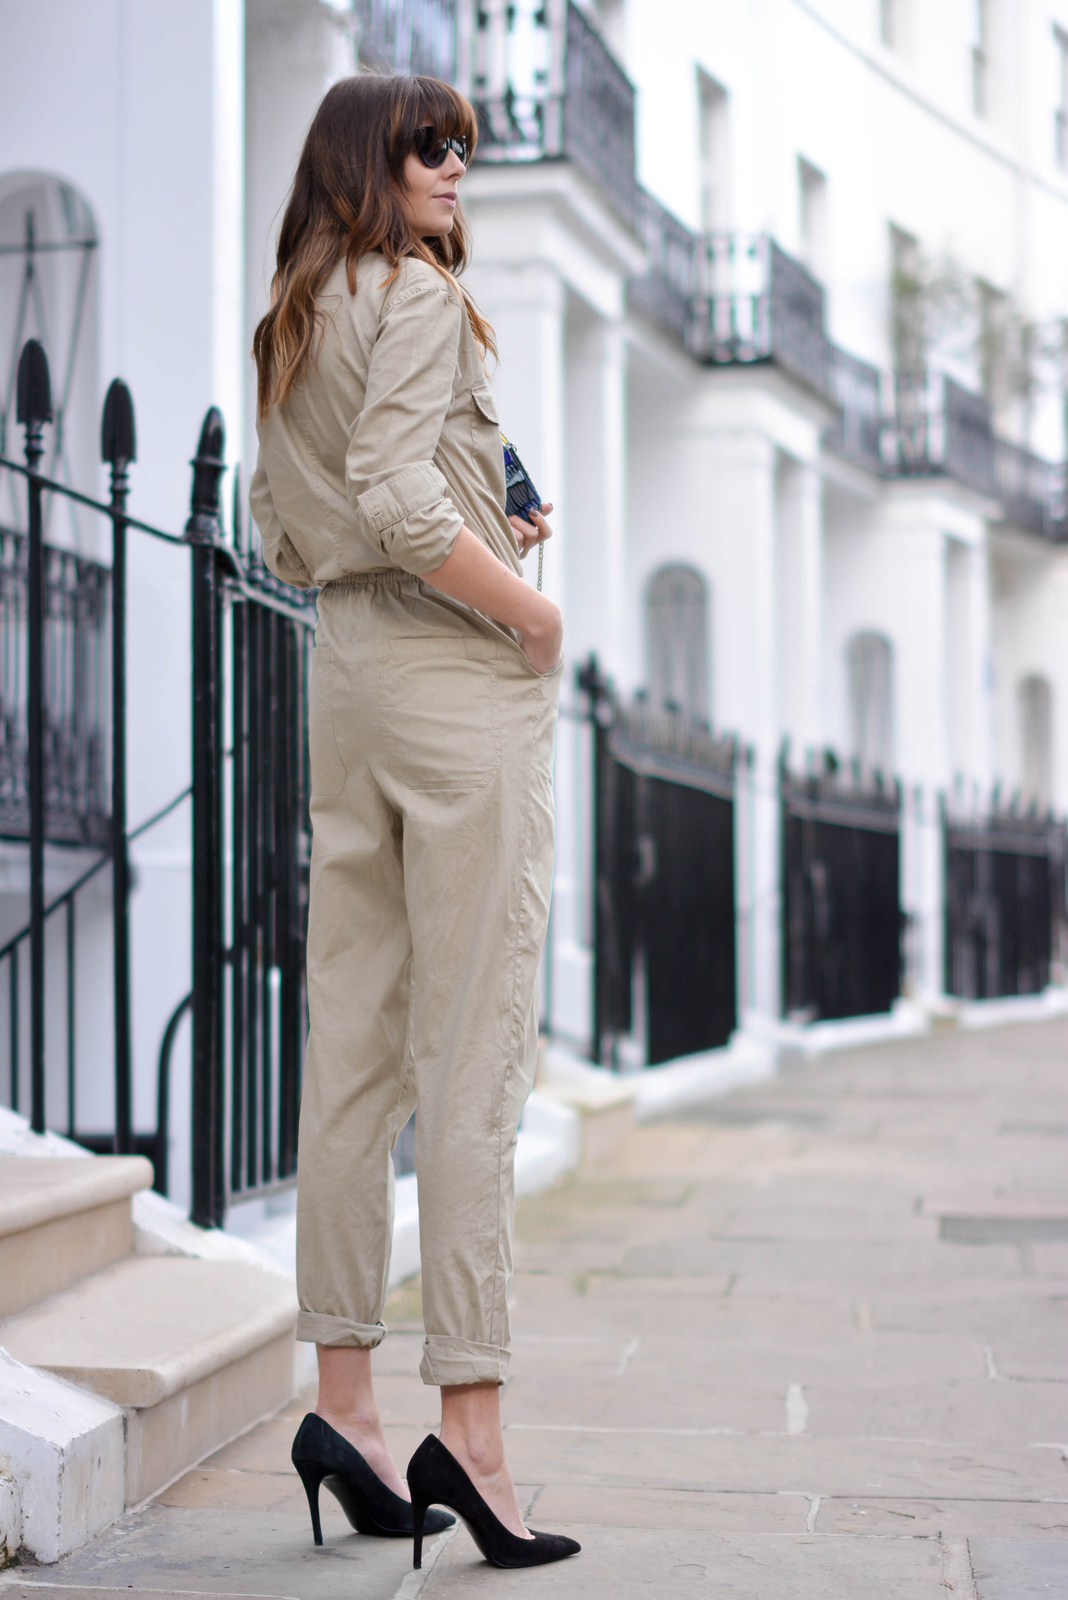 EJSTYLE - Emma Hill, H&M jumpsuit boilersuit, H&M concious collection 2015, H&M SS15, Zara black suede court shoes, OOTD, London Street style